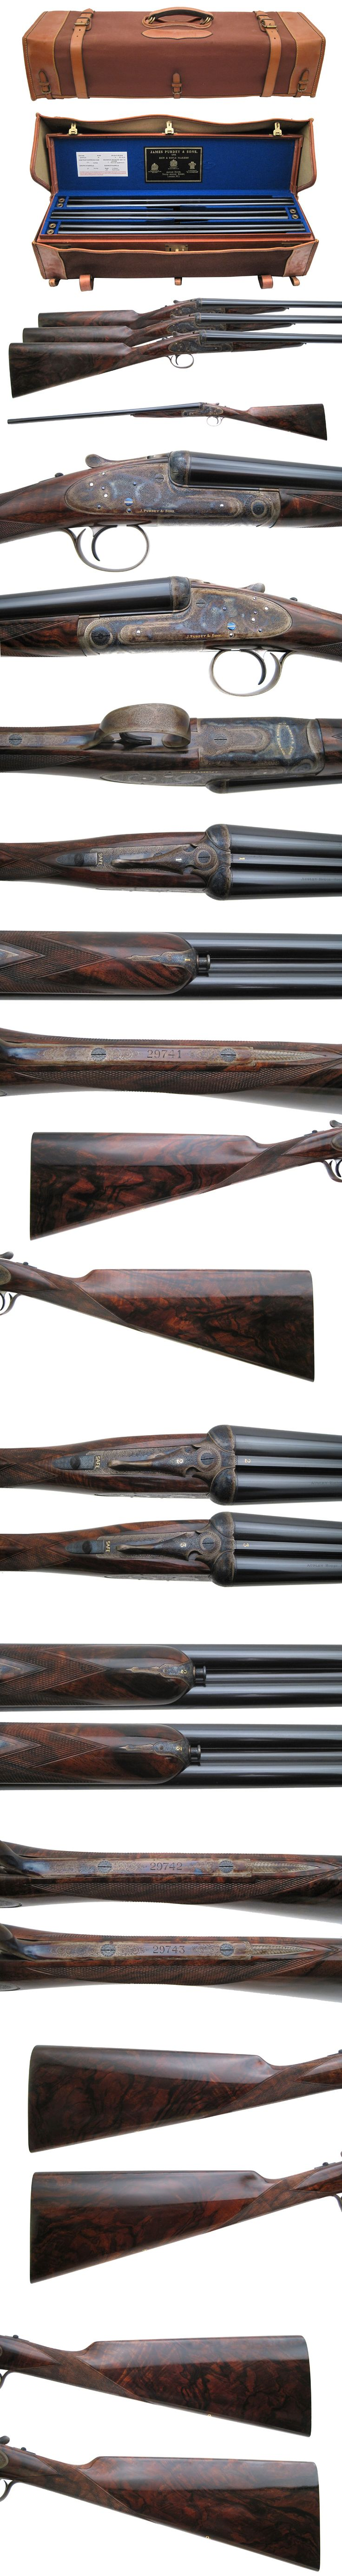 Griffin & Howe - Gun Details Page J. Purdey & Sons - Best Trio Round Actions - 20 ga - $255,000.00 Love the magnum case for fitting all 3 firearms at once. Quite a beast- but a lovely beast!